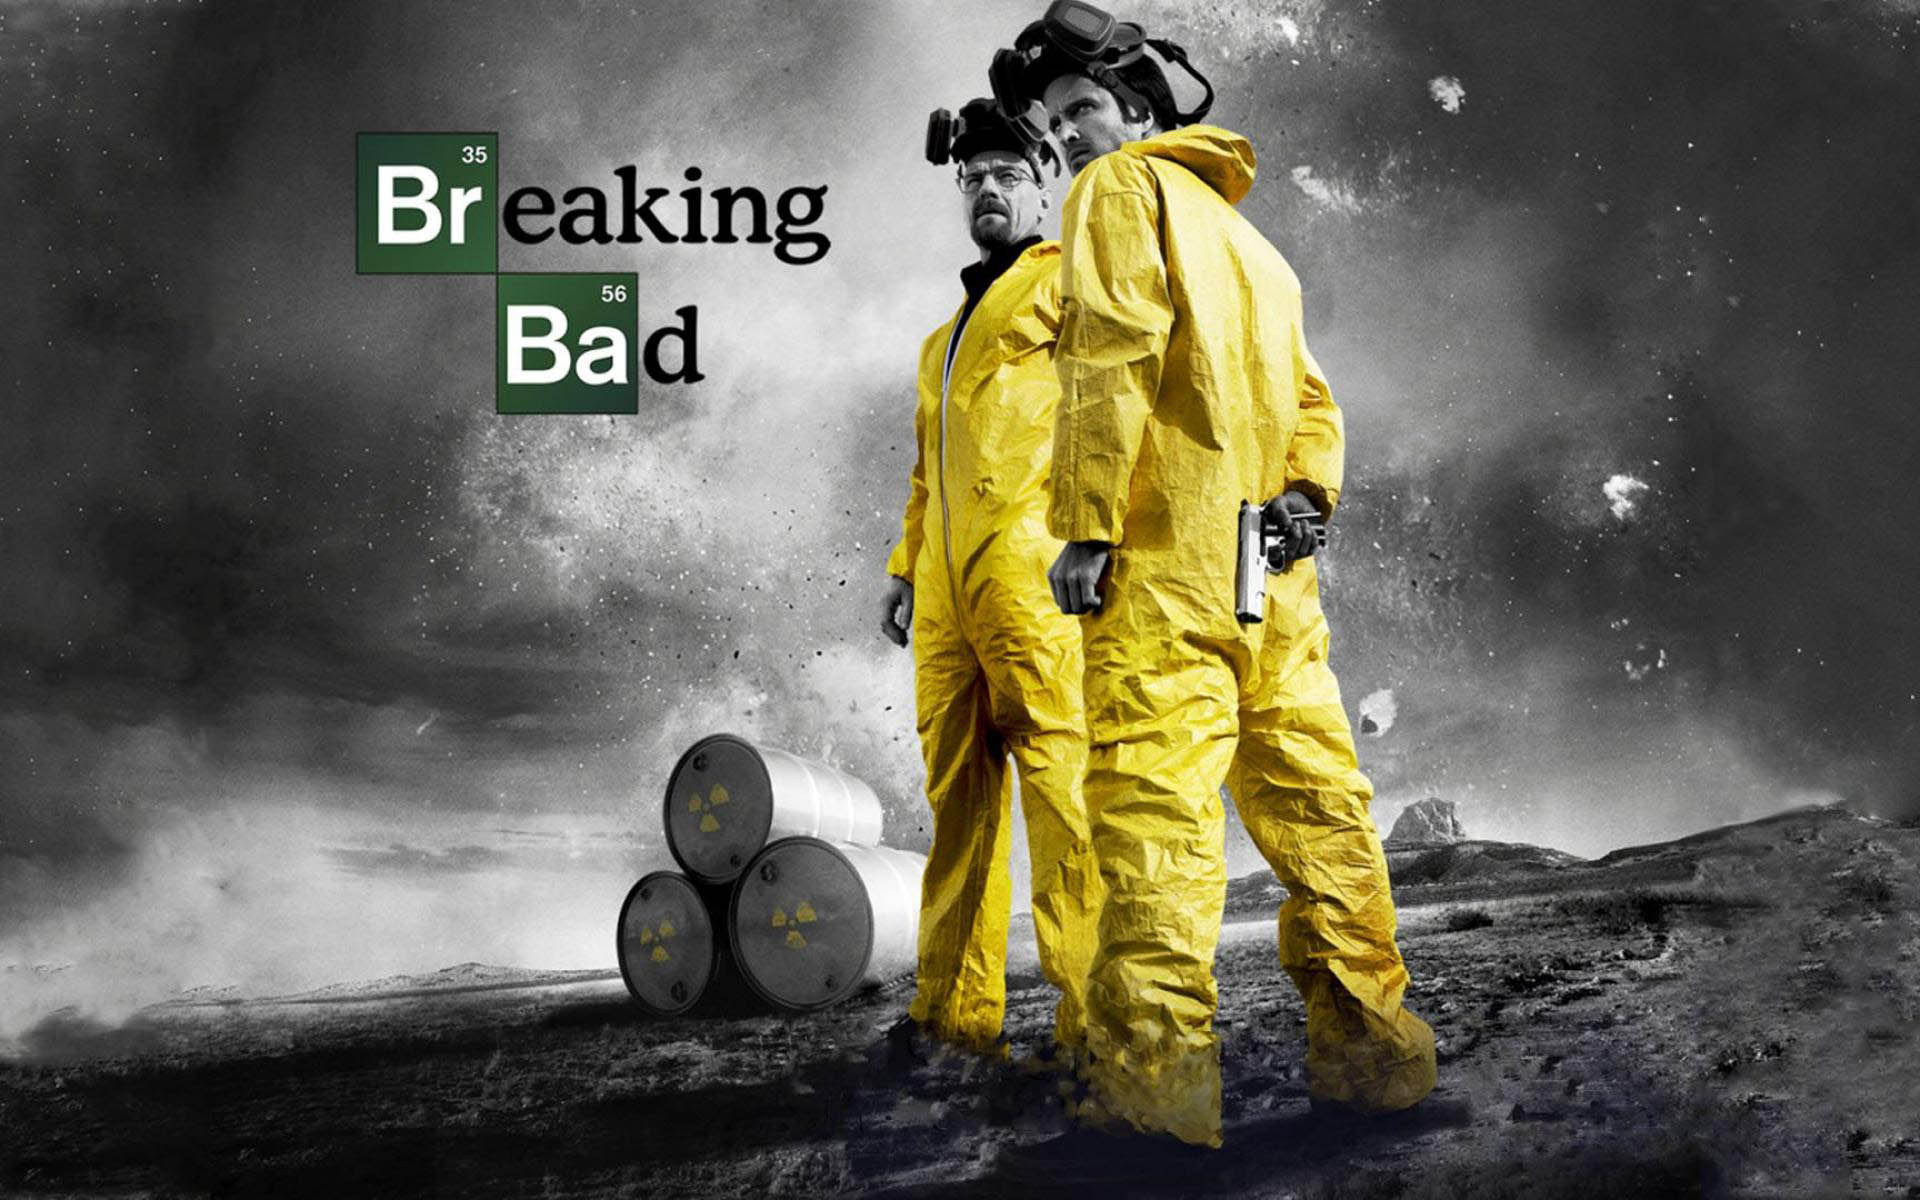 Yoda 1080p Breaking Bad Wallpaper 1920×1080 Wallpaper